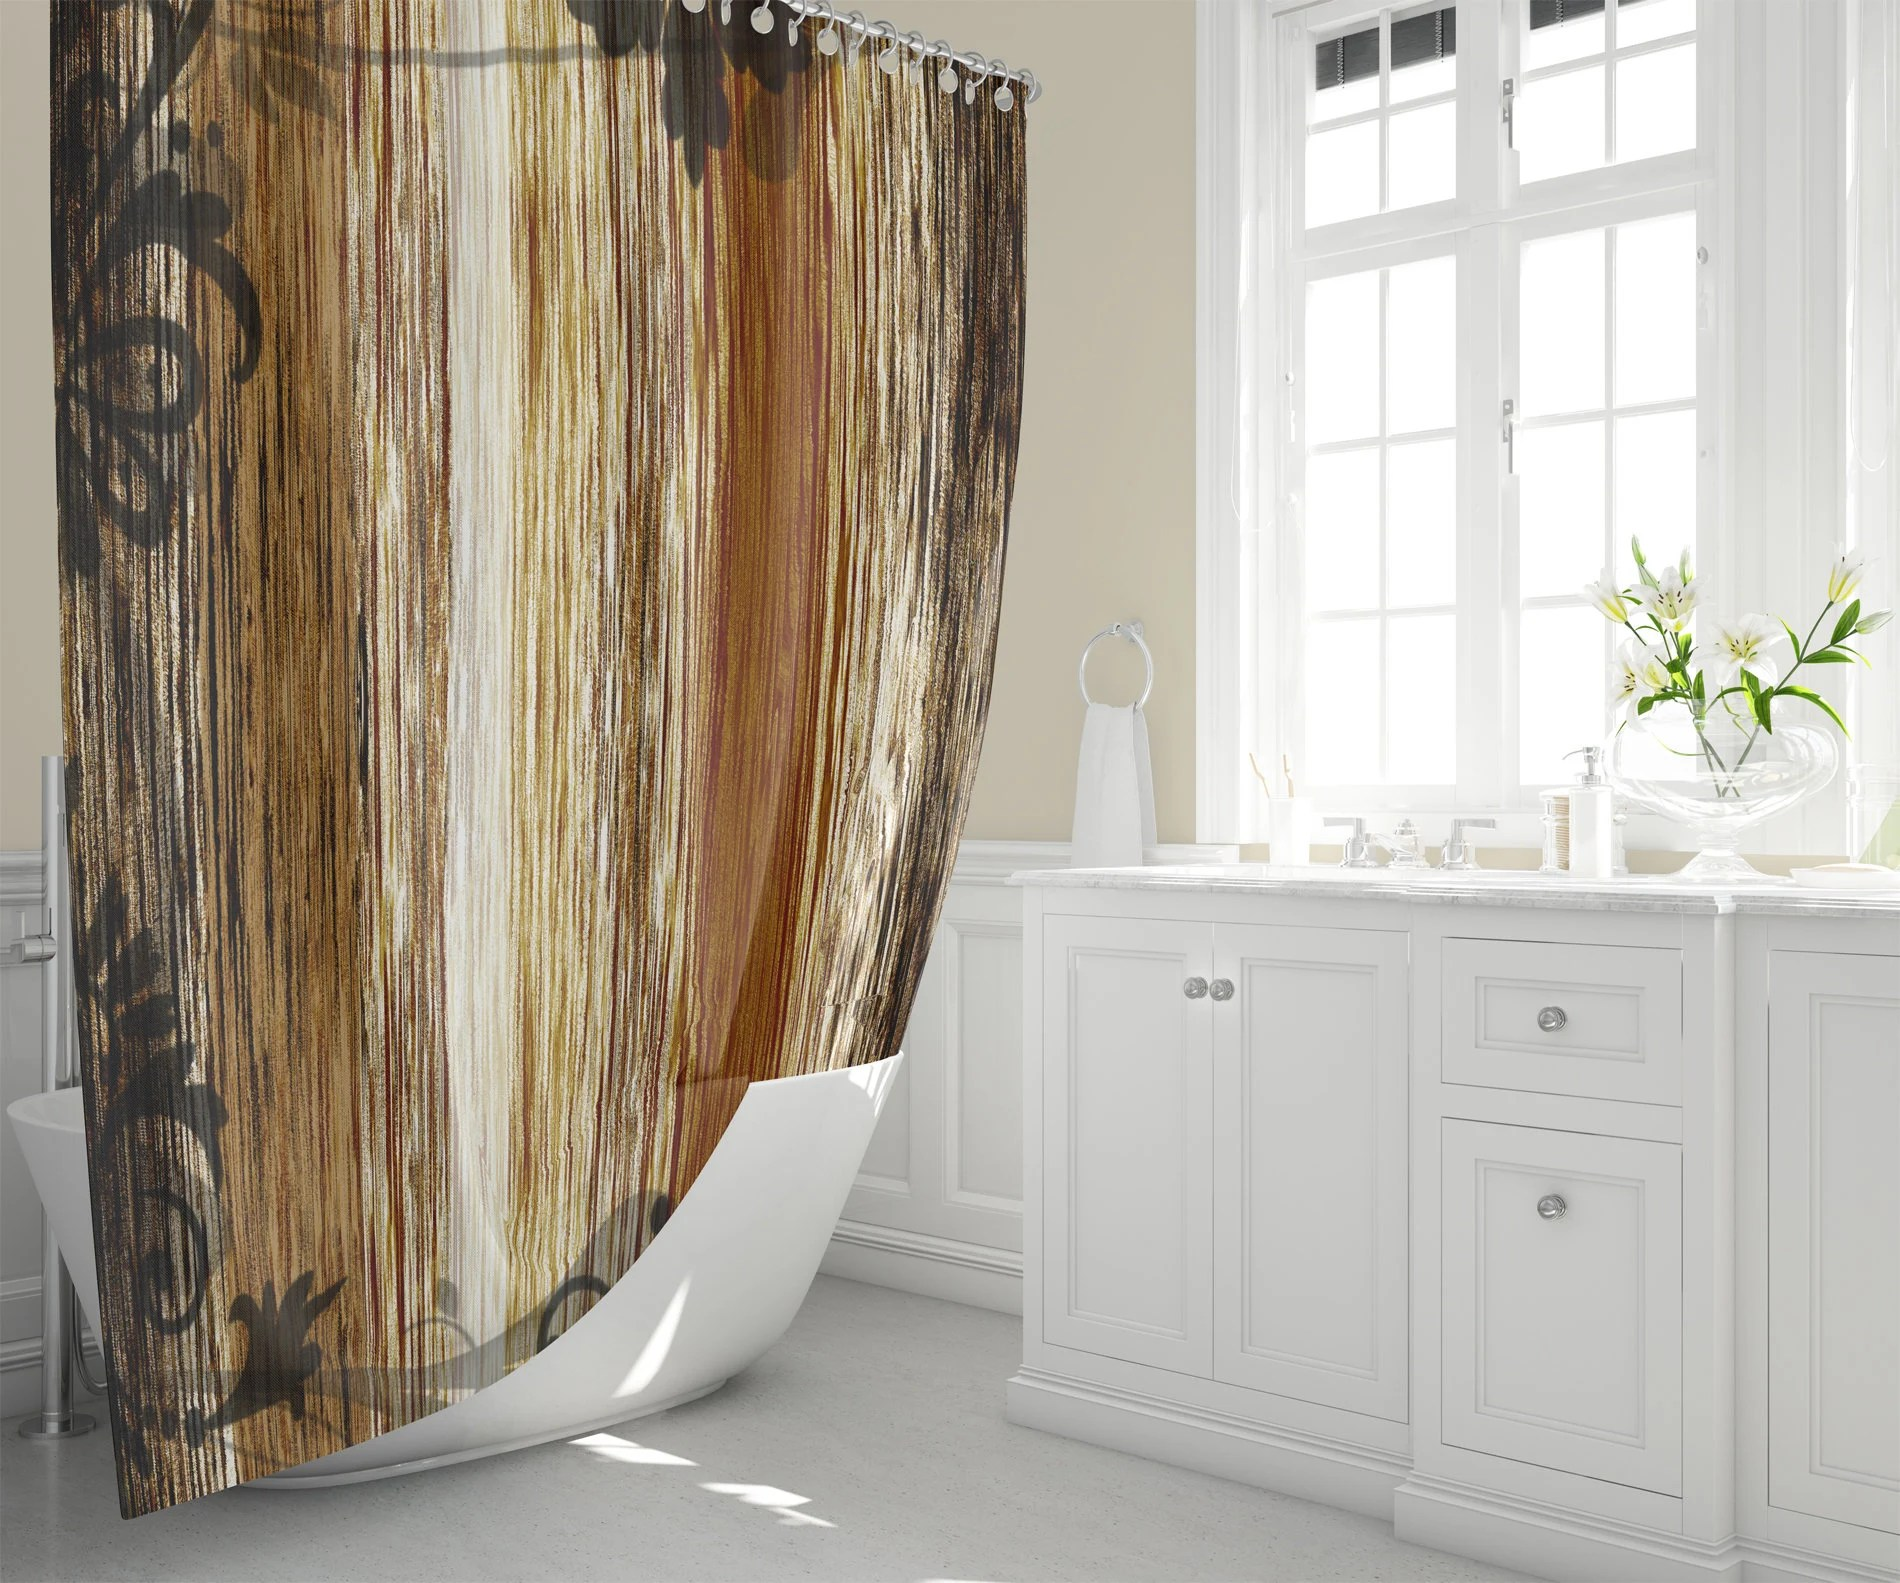 Brown Fabric Shower Curtain Rough Blended Lines And Graphic Black Scroll And Flower Pattern Modern Rustic Home Decor